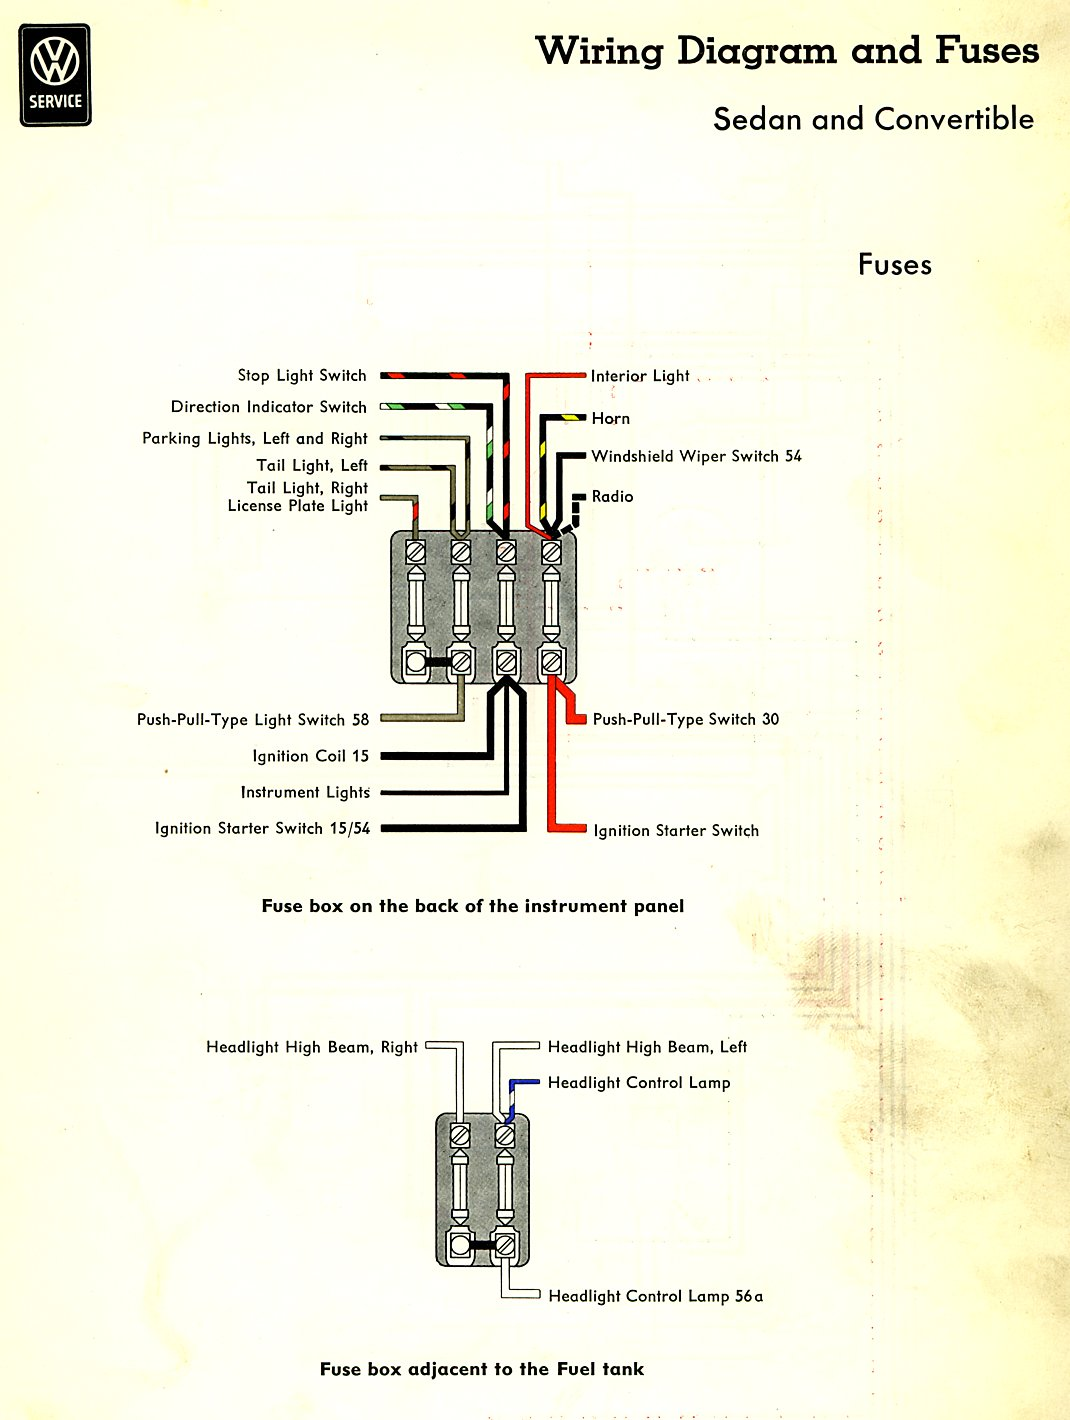 1965 Chevelle Wiring Diagram from www.thesamba.com